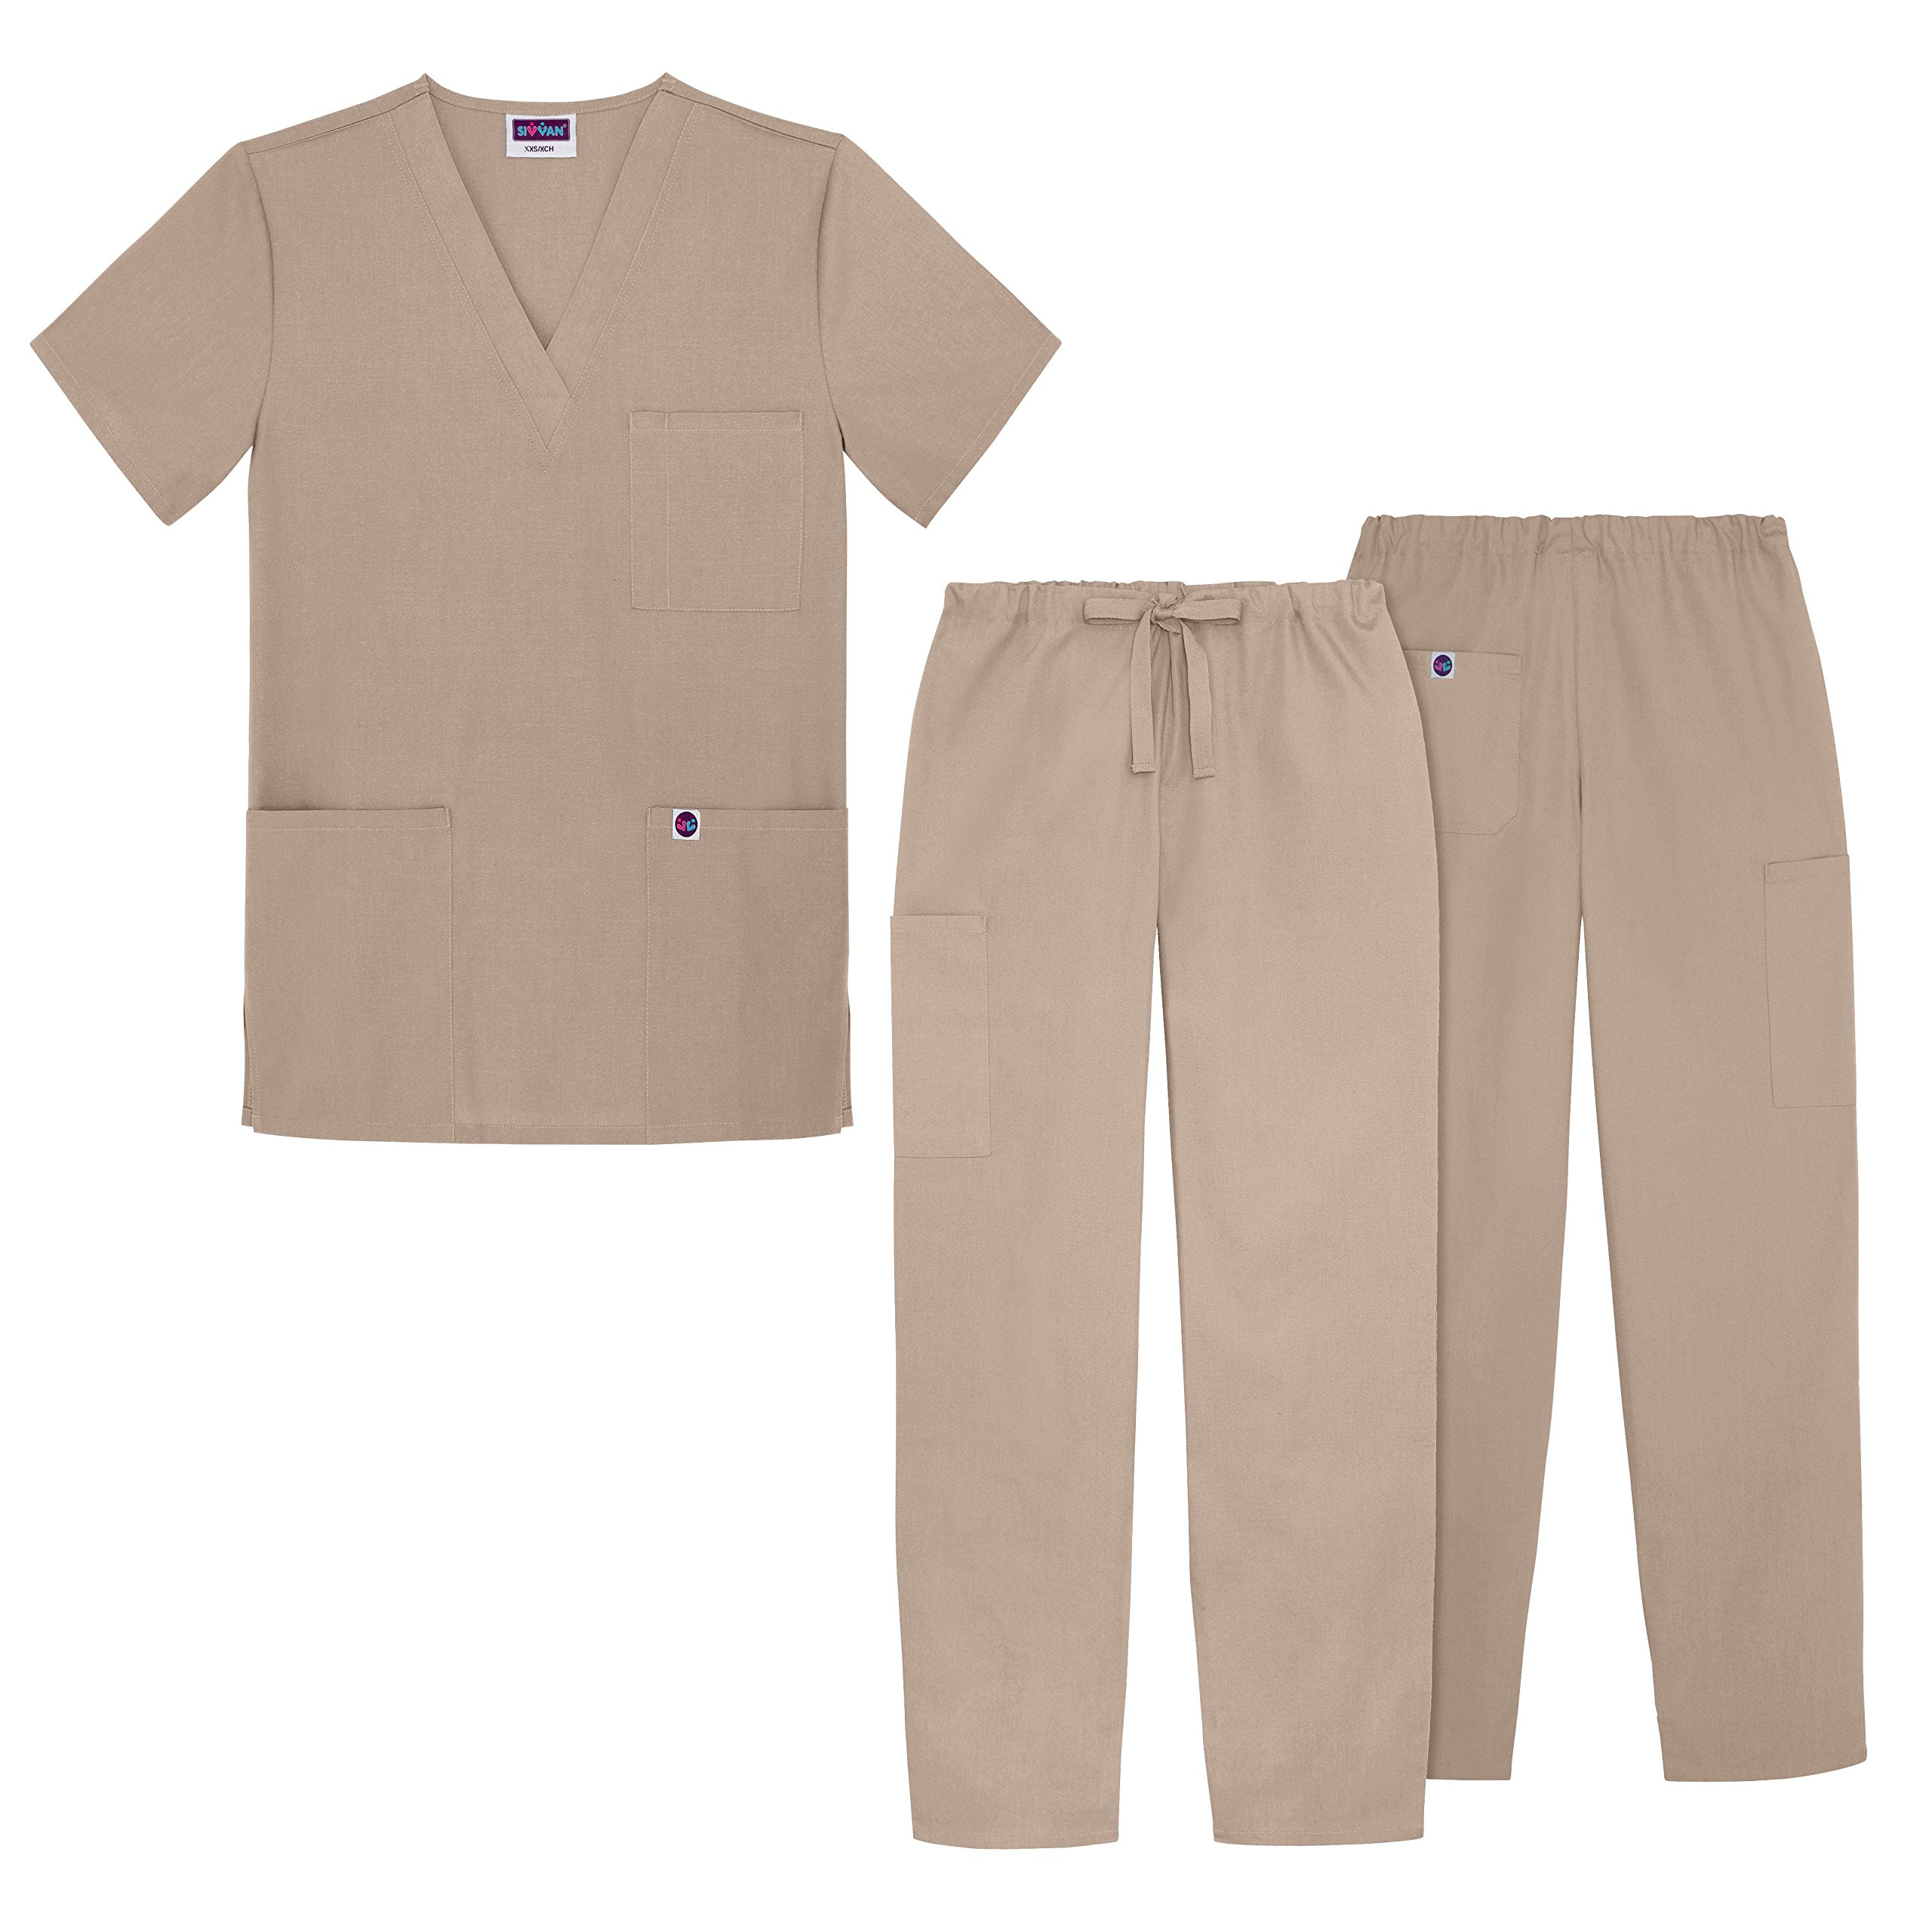 Sivvan Unisex Classic Scrub Set V-neck Top / Drawstring Pants (Available in 12 Solid Colors) - S8400 - Khaki - XL